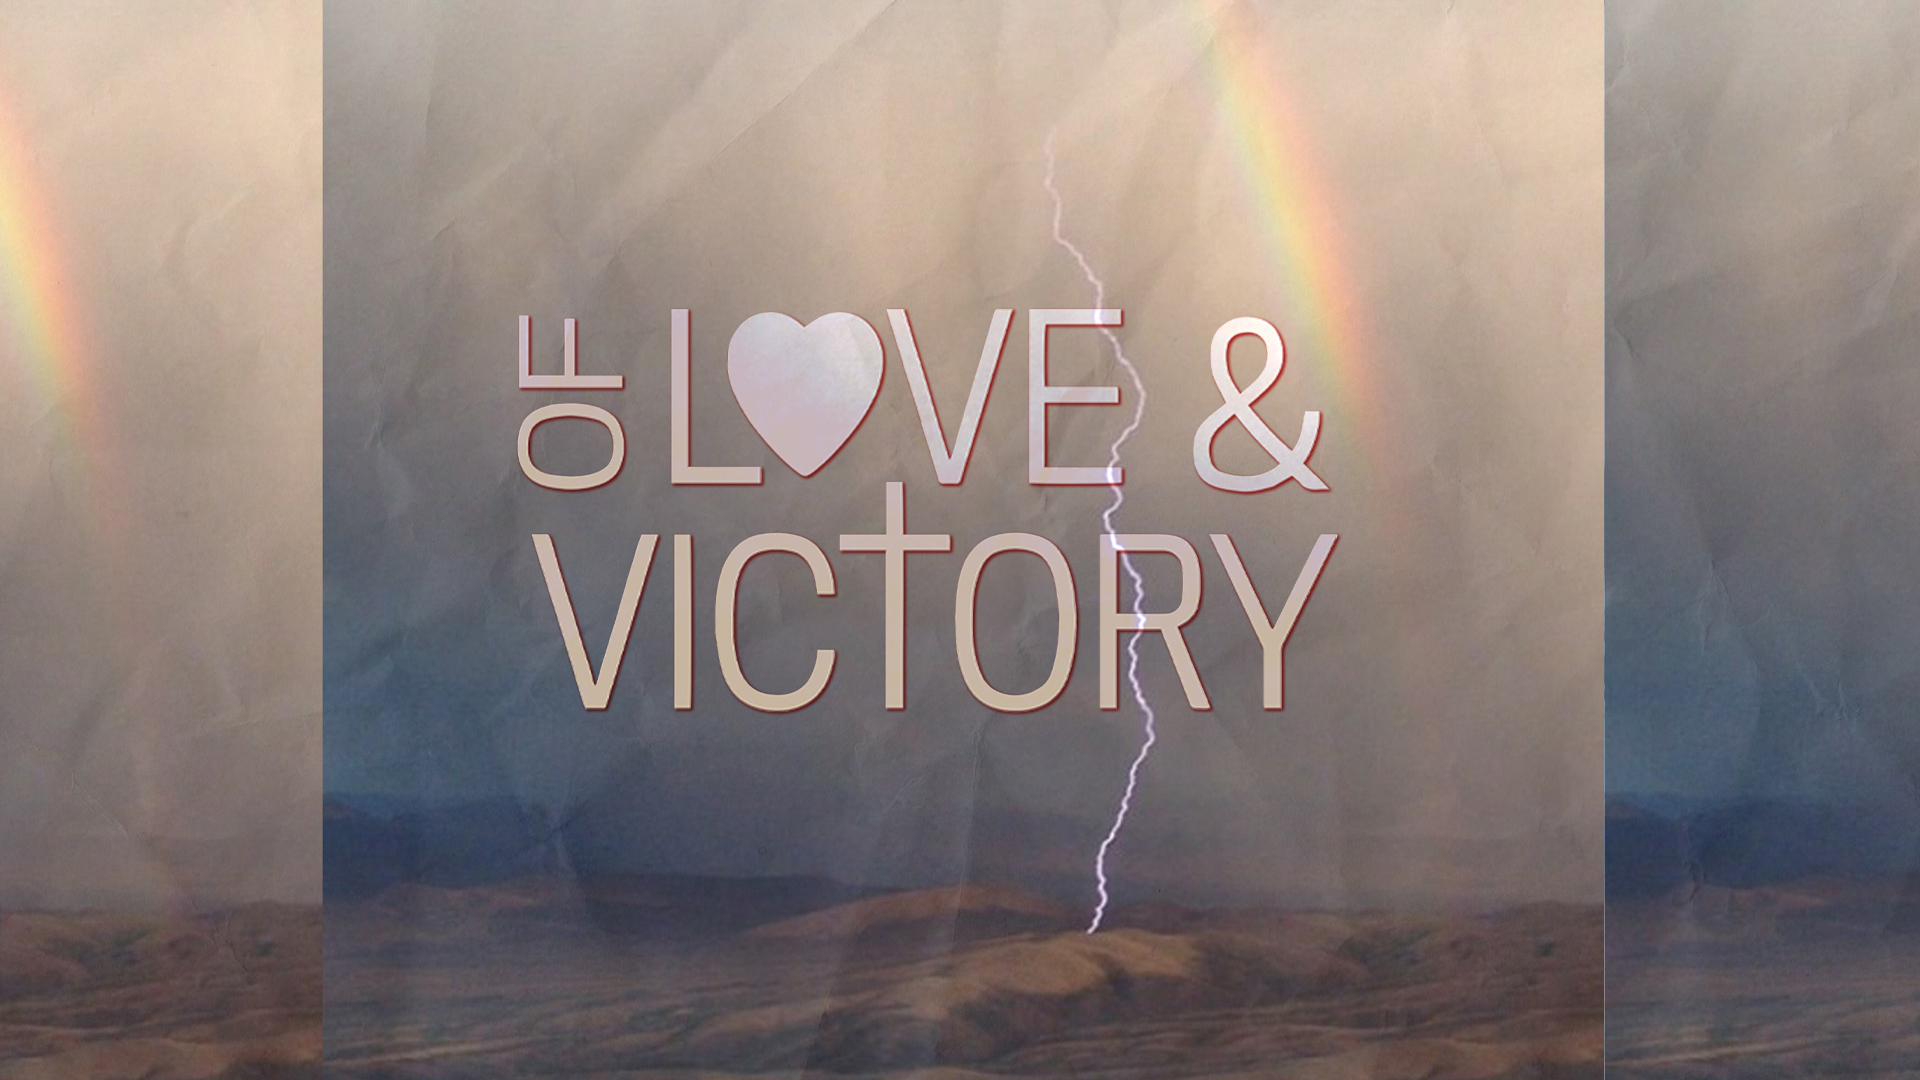 Of Love and Victory